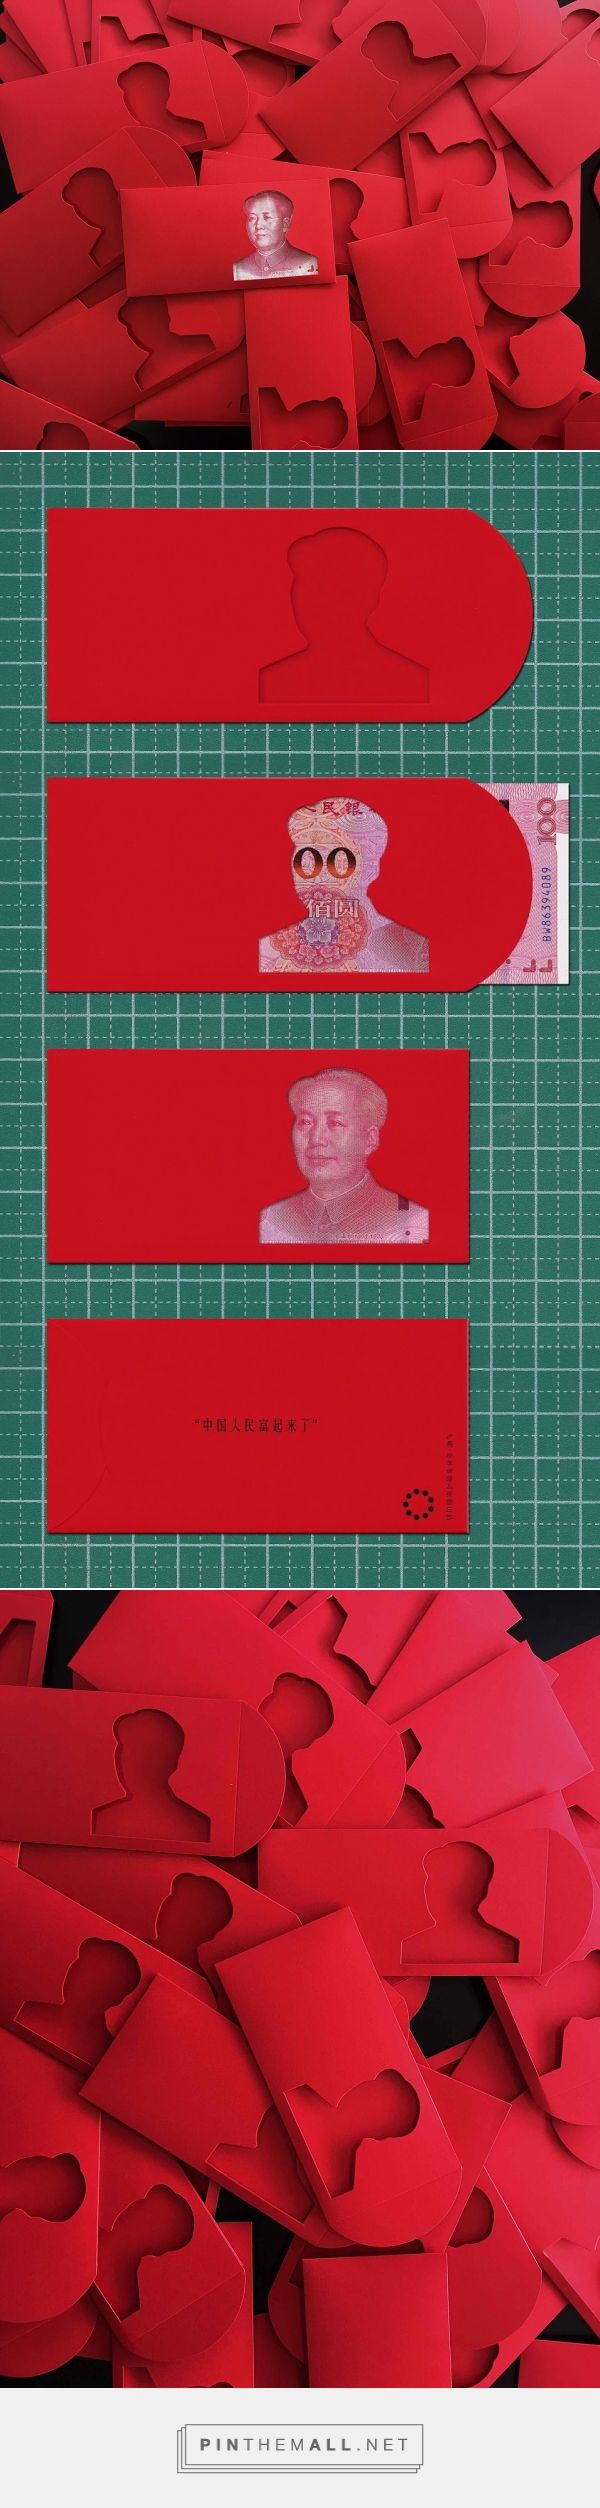 Chairman Mao CNY Red Packet design by Jody Xiong - http://www.packagingoftheworld.com/2017/01/chairman-mao-red-packet.html